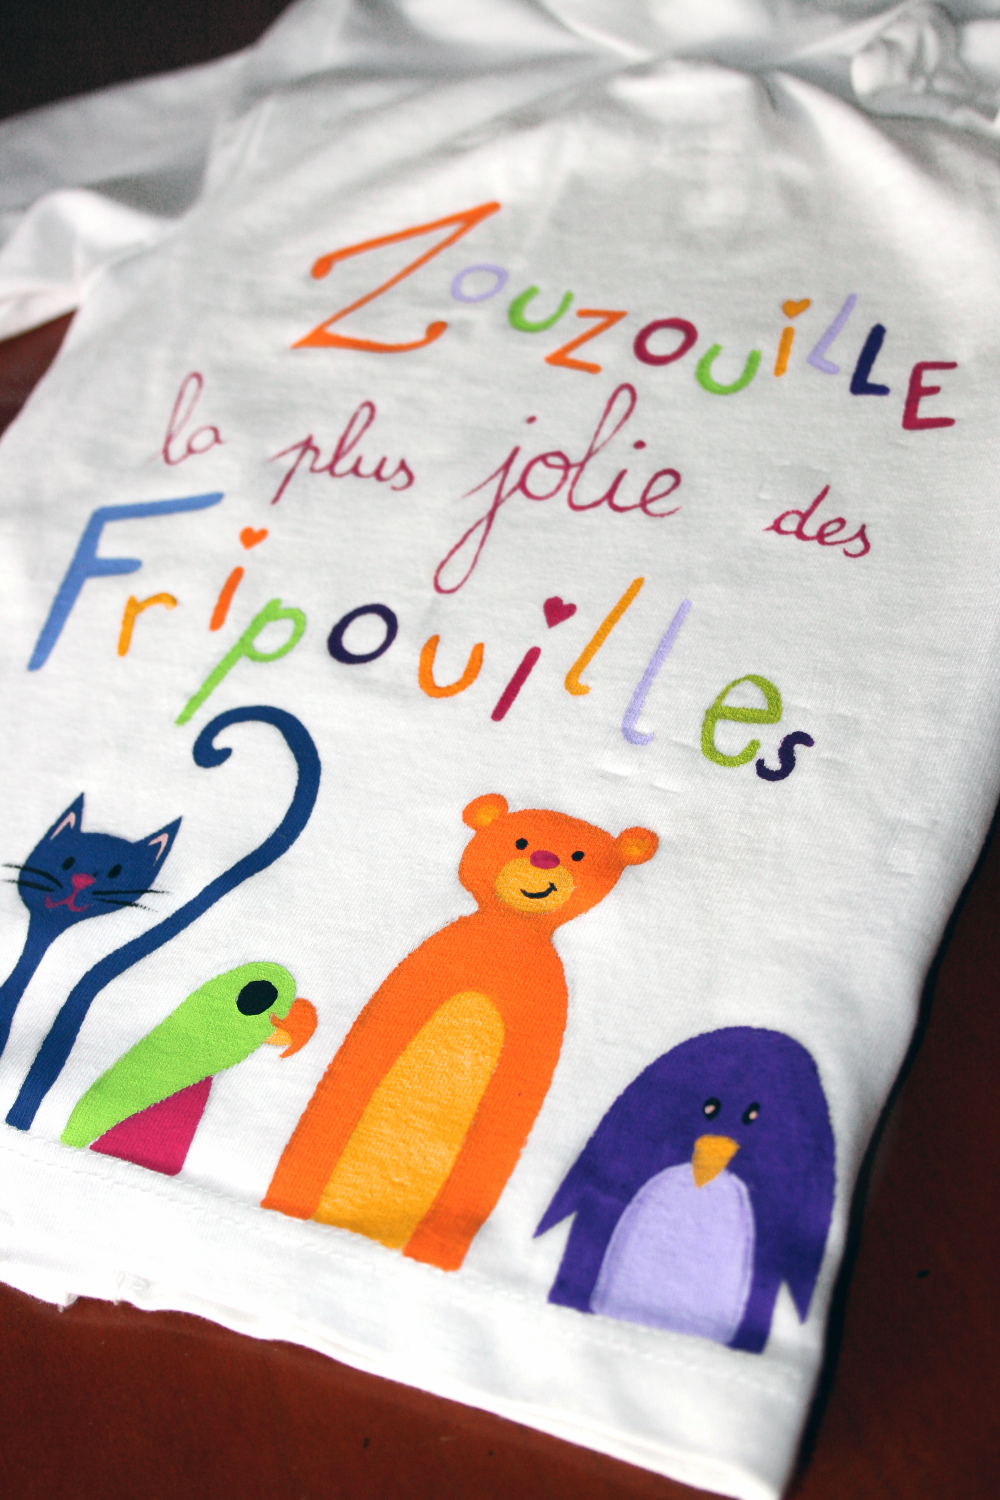 Zouzouille (10)_edited